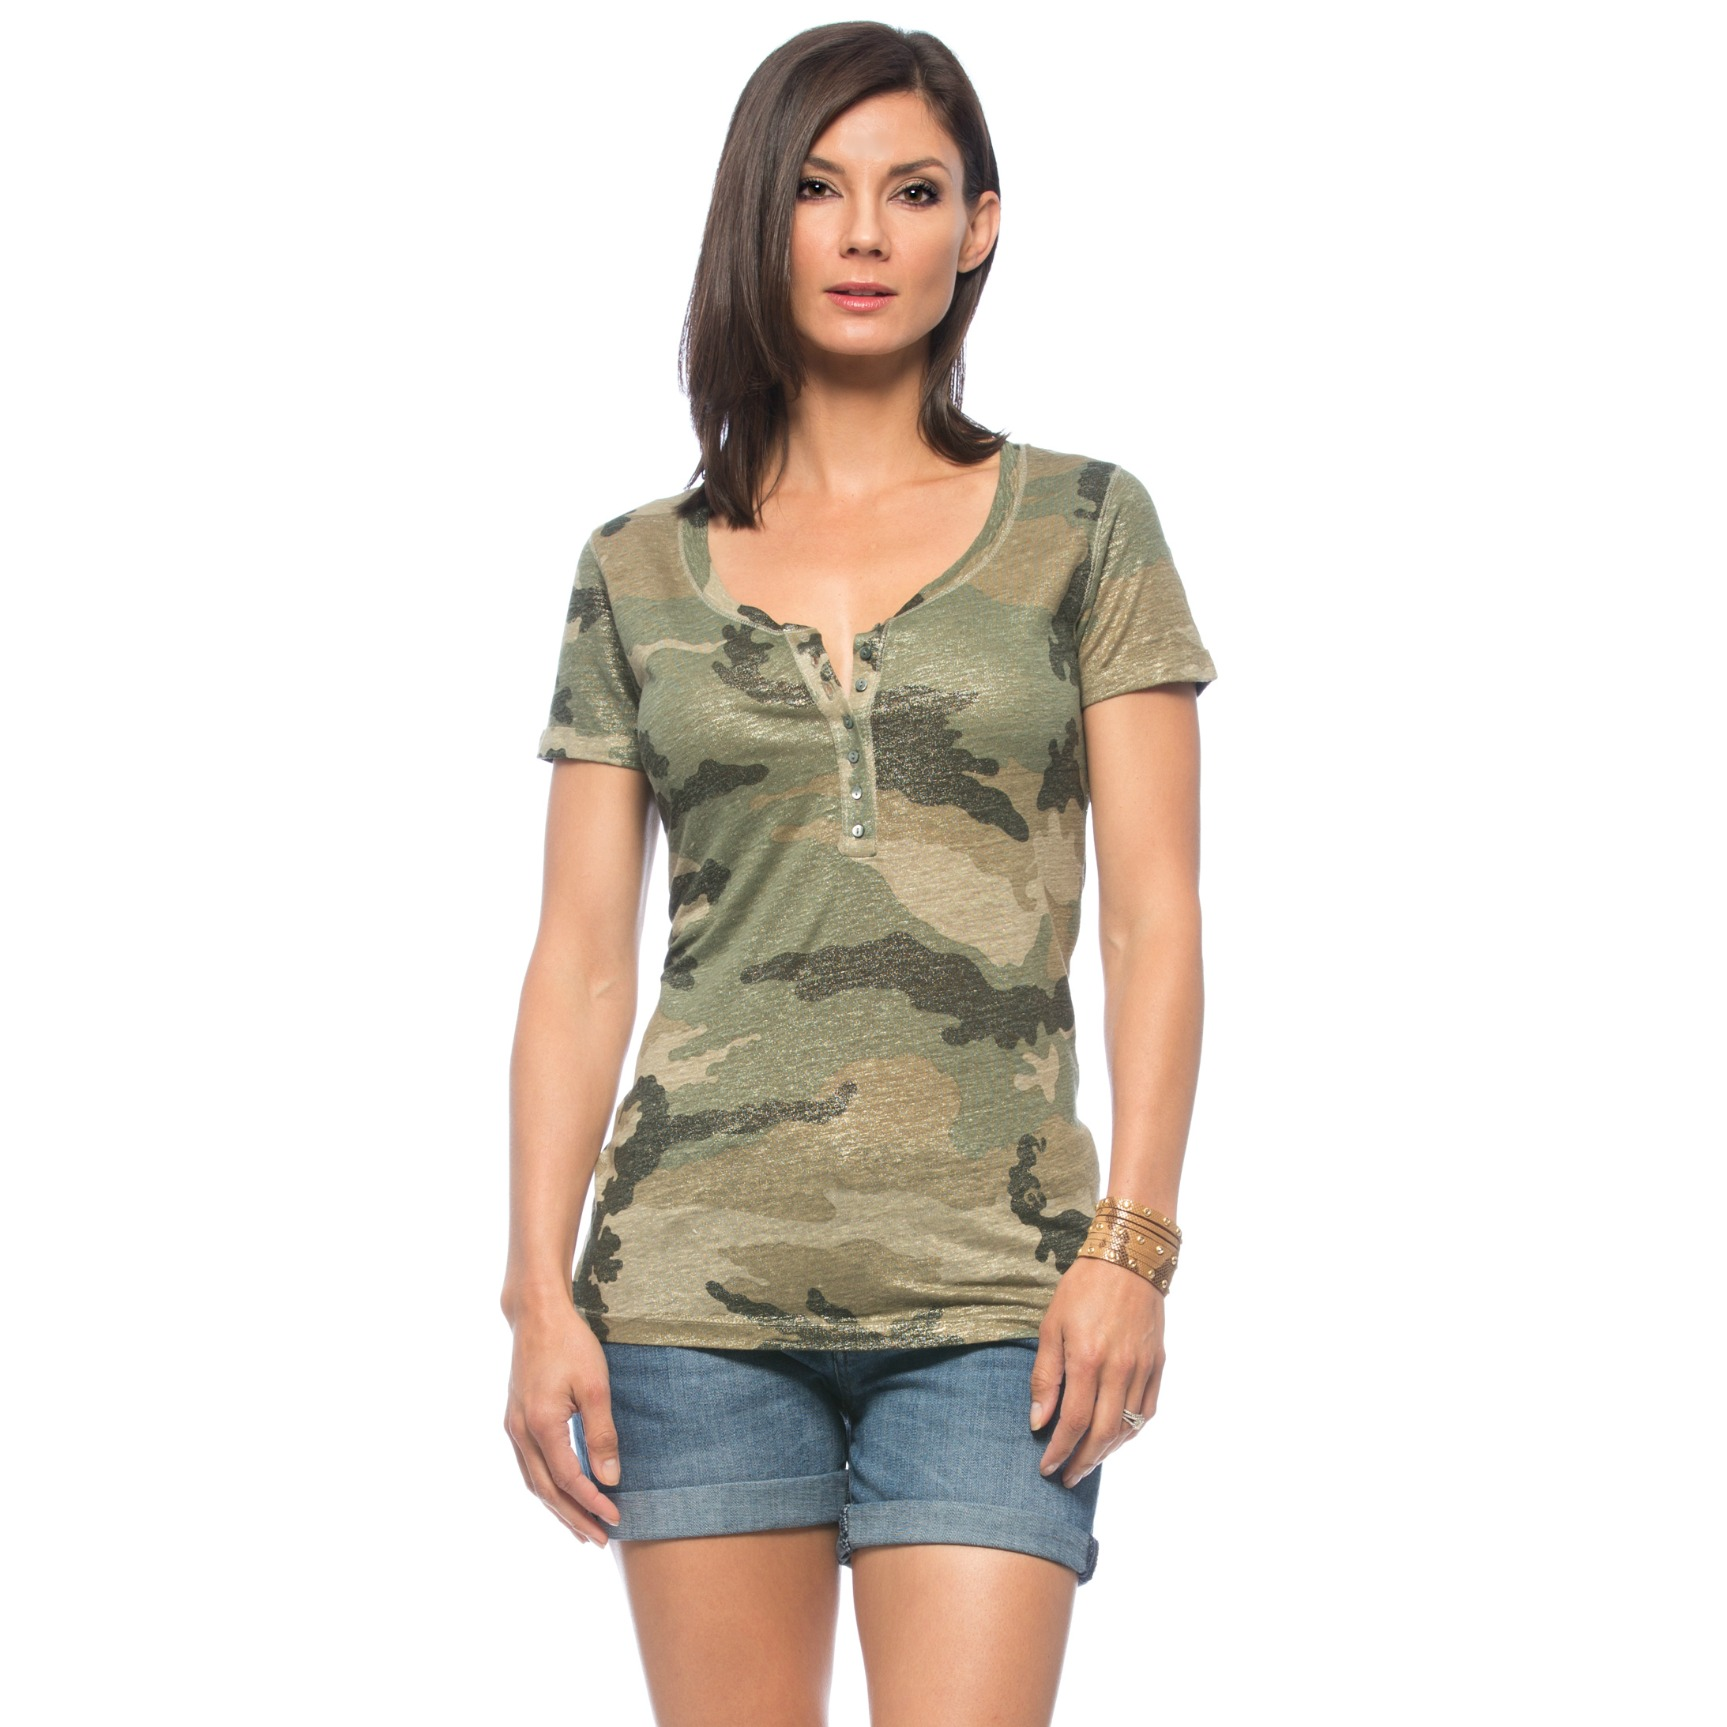 Girls can do camo, too! Cut Henley style, this  camo top  has all the right masculine qualities to make it desirable to us, with a metallic finish and slim fit to make it desirable ON us!